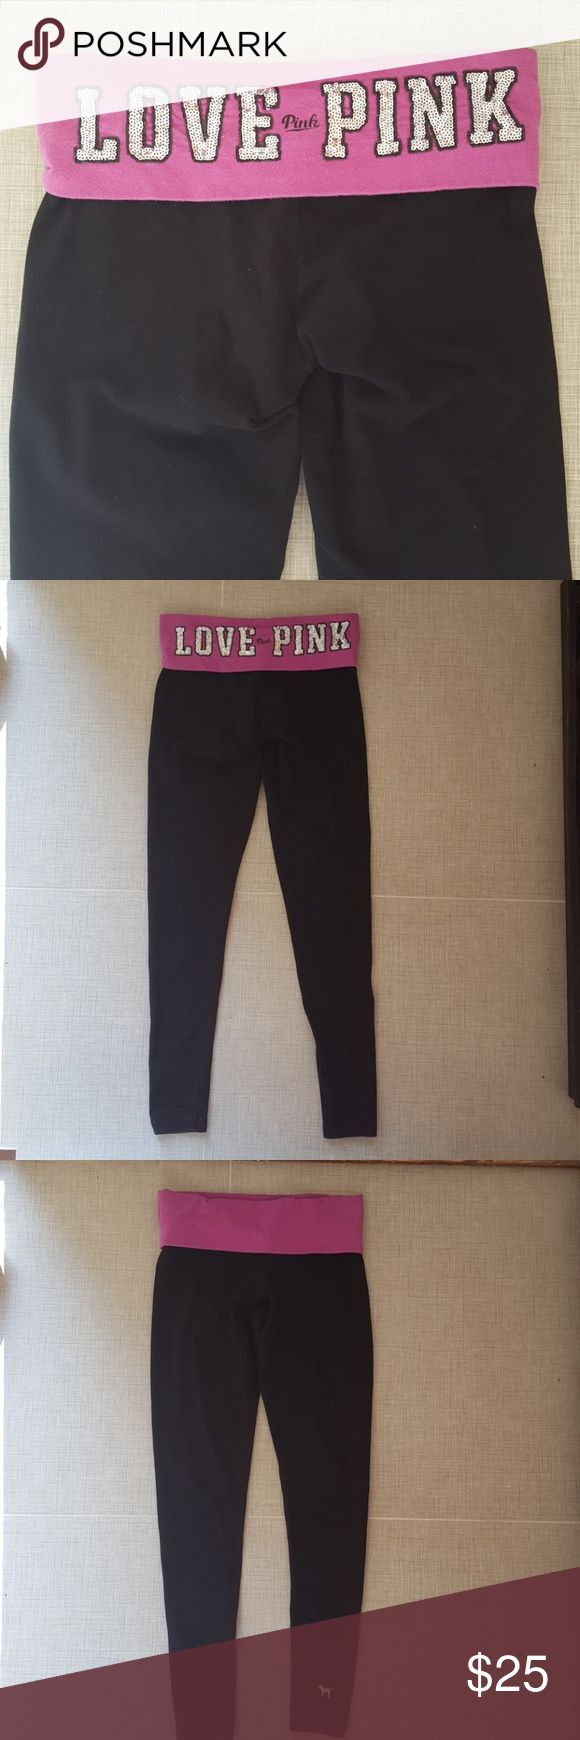 """PINK Sequin Leggings Victoria's Secret PINK foldover leggings with sequins on back waistband. Dog emblem on ankle. Black leggings, purple waistband, silver & black sequins. No pilling or holes. 29"""" inseam, waistband is 13.5"""" across when laying flat. No trades. PINK Victoria's Secret Pants Leggings"""